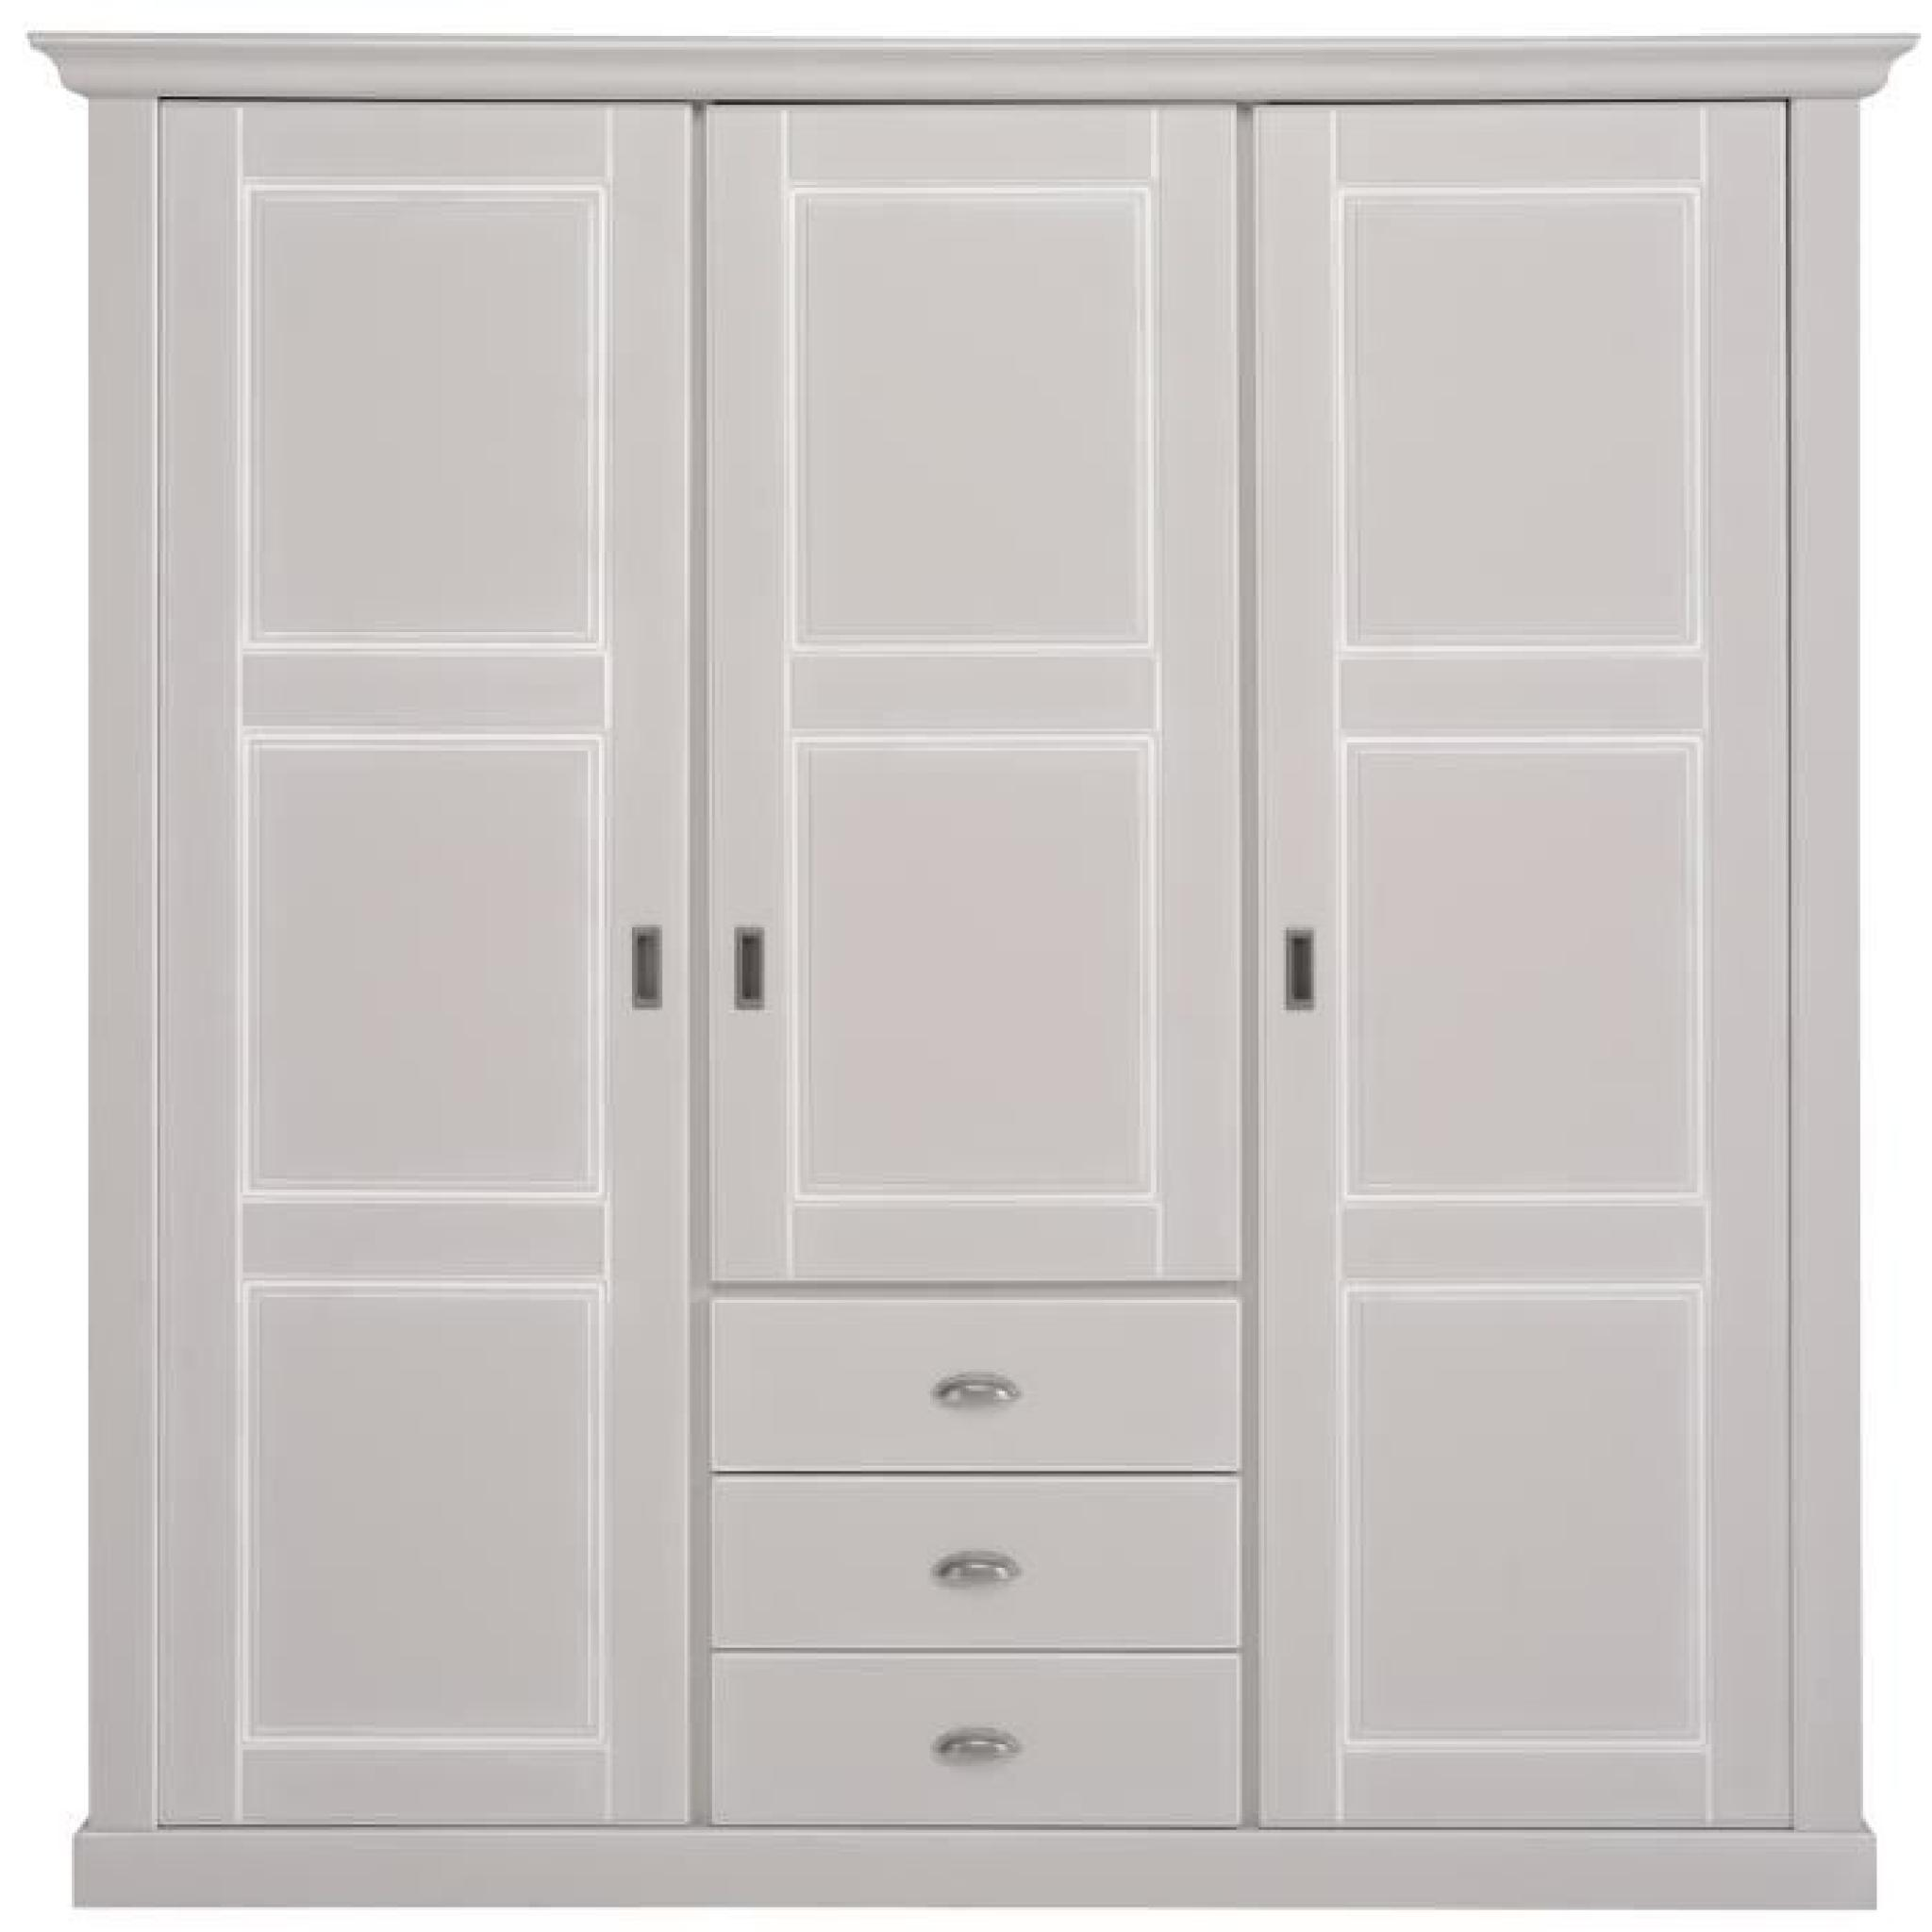 armoire 3 portes et 3 tiroirs coloris gris clair laqu. Black Bedroom Furniture Sets. Home Design Ideas